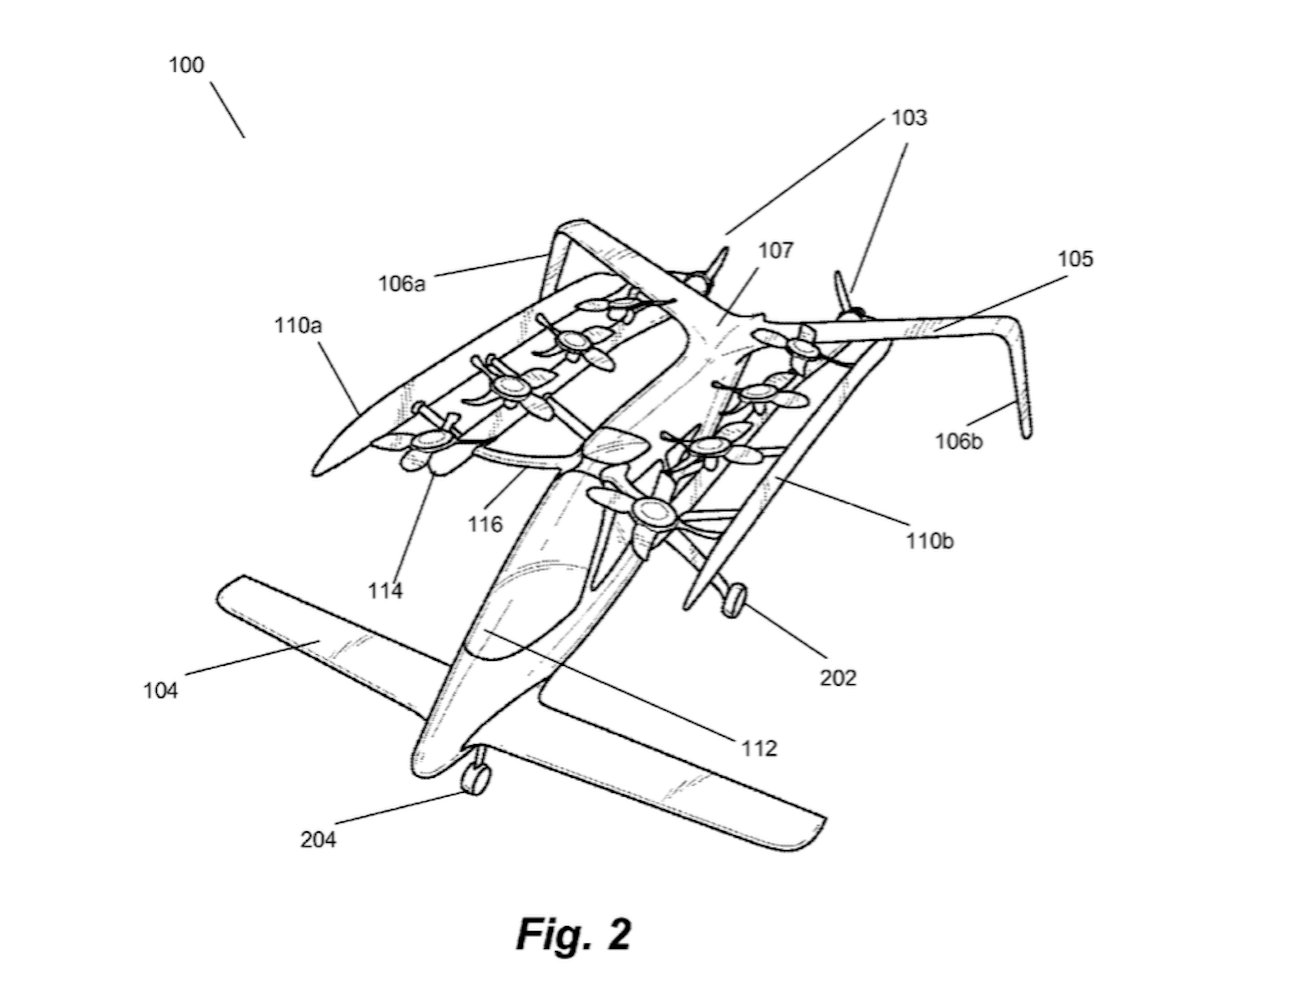 Flying car from Larry Page